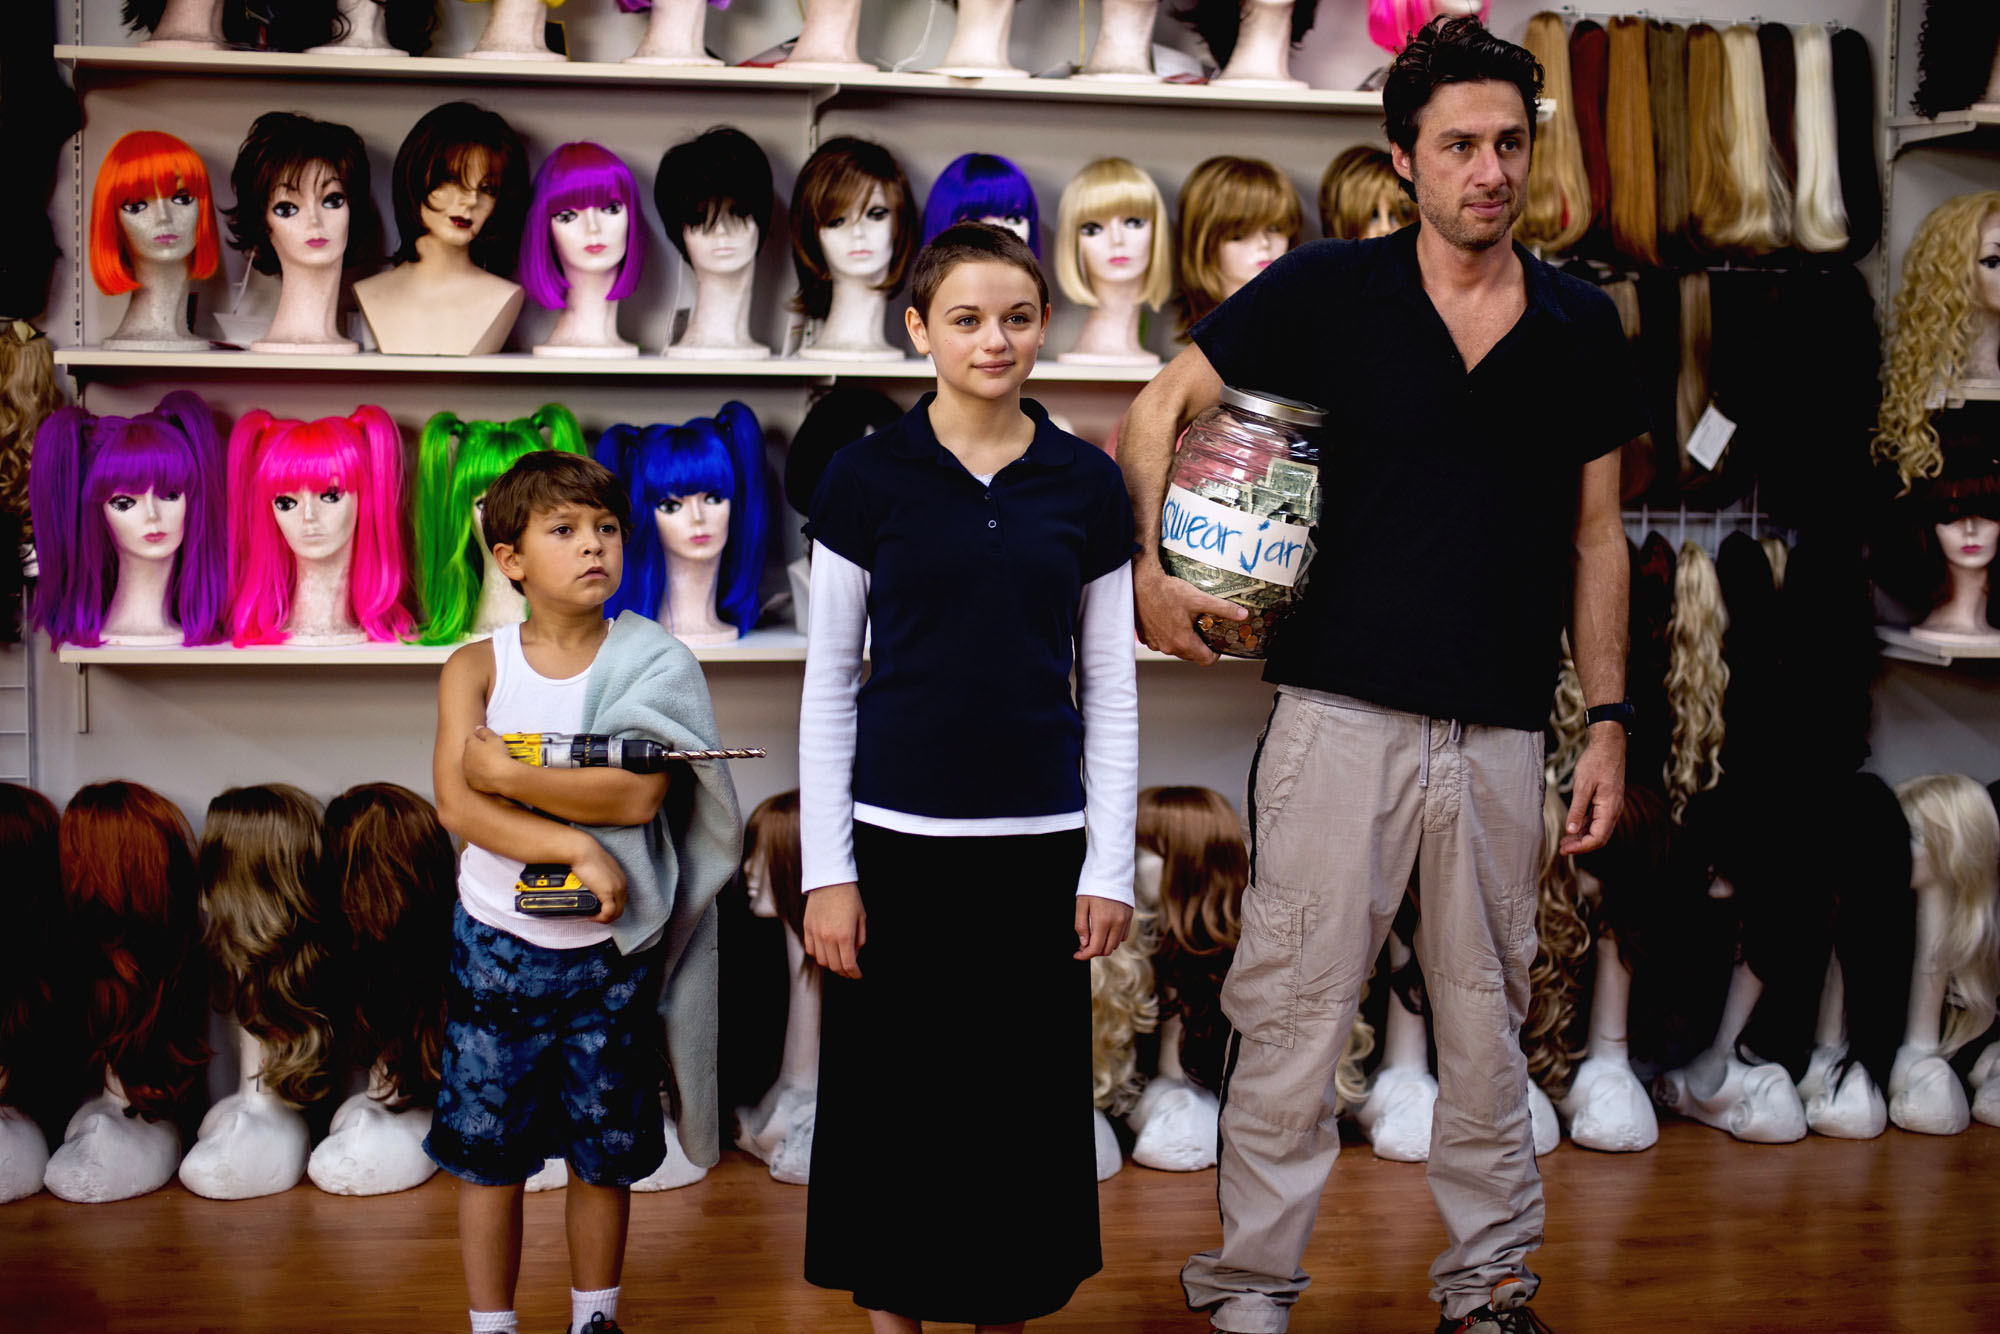 Pierce Gagnon, Joey King e Zach Braff in Wish I Was Here (Zach Braff, 2014)